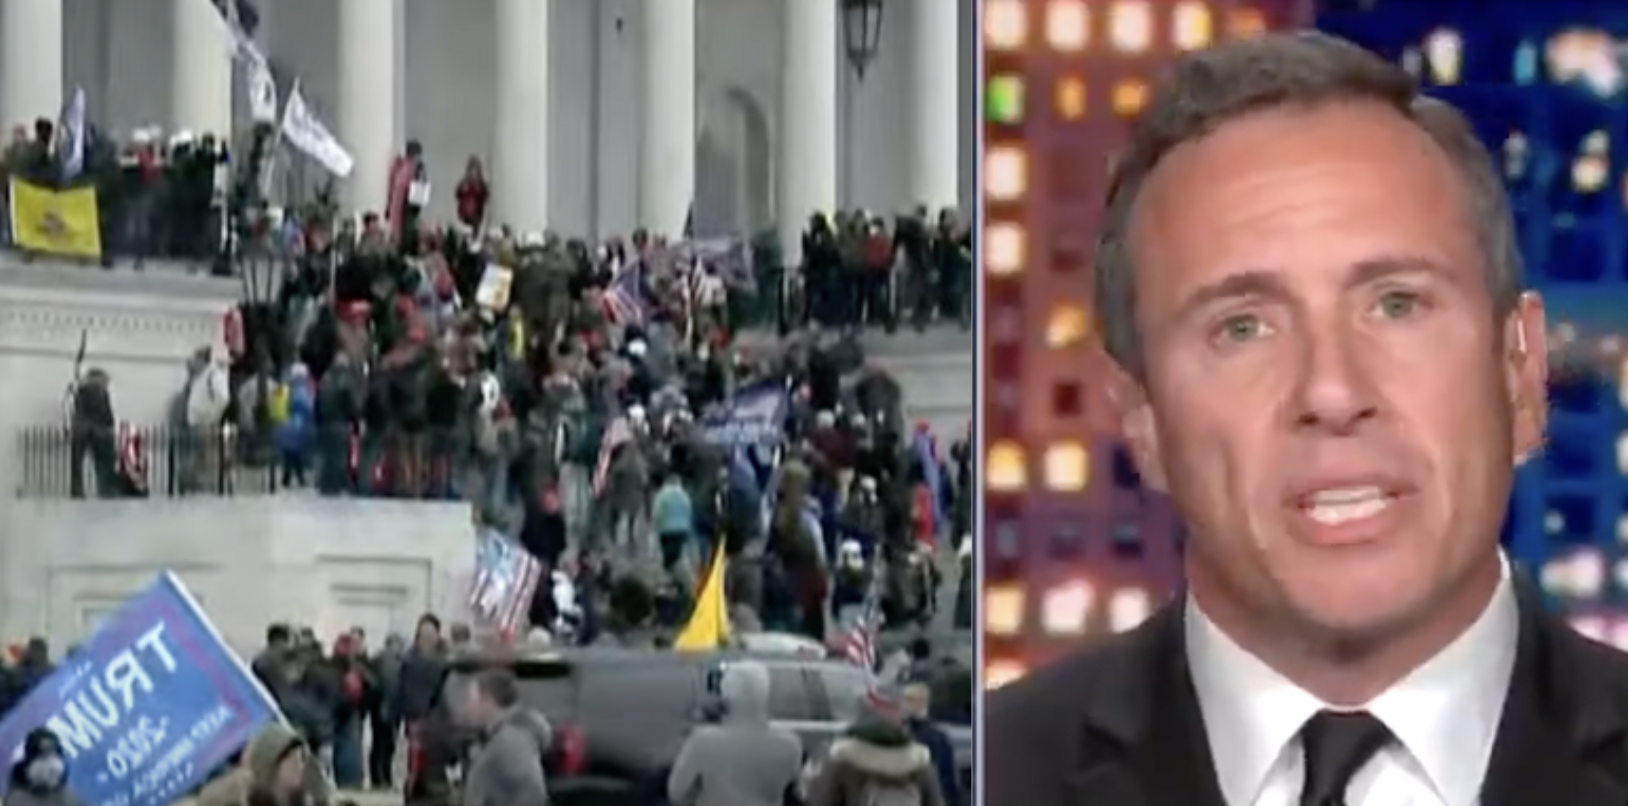 HYPOCRISY: Left-wing media suddenly cares about riots and attacks on federal buildings after covering for Antifa all year